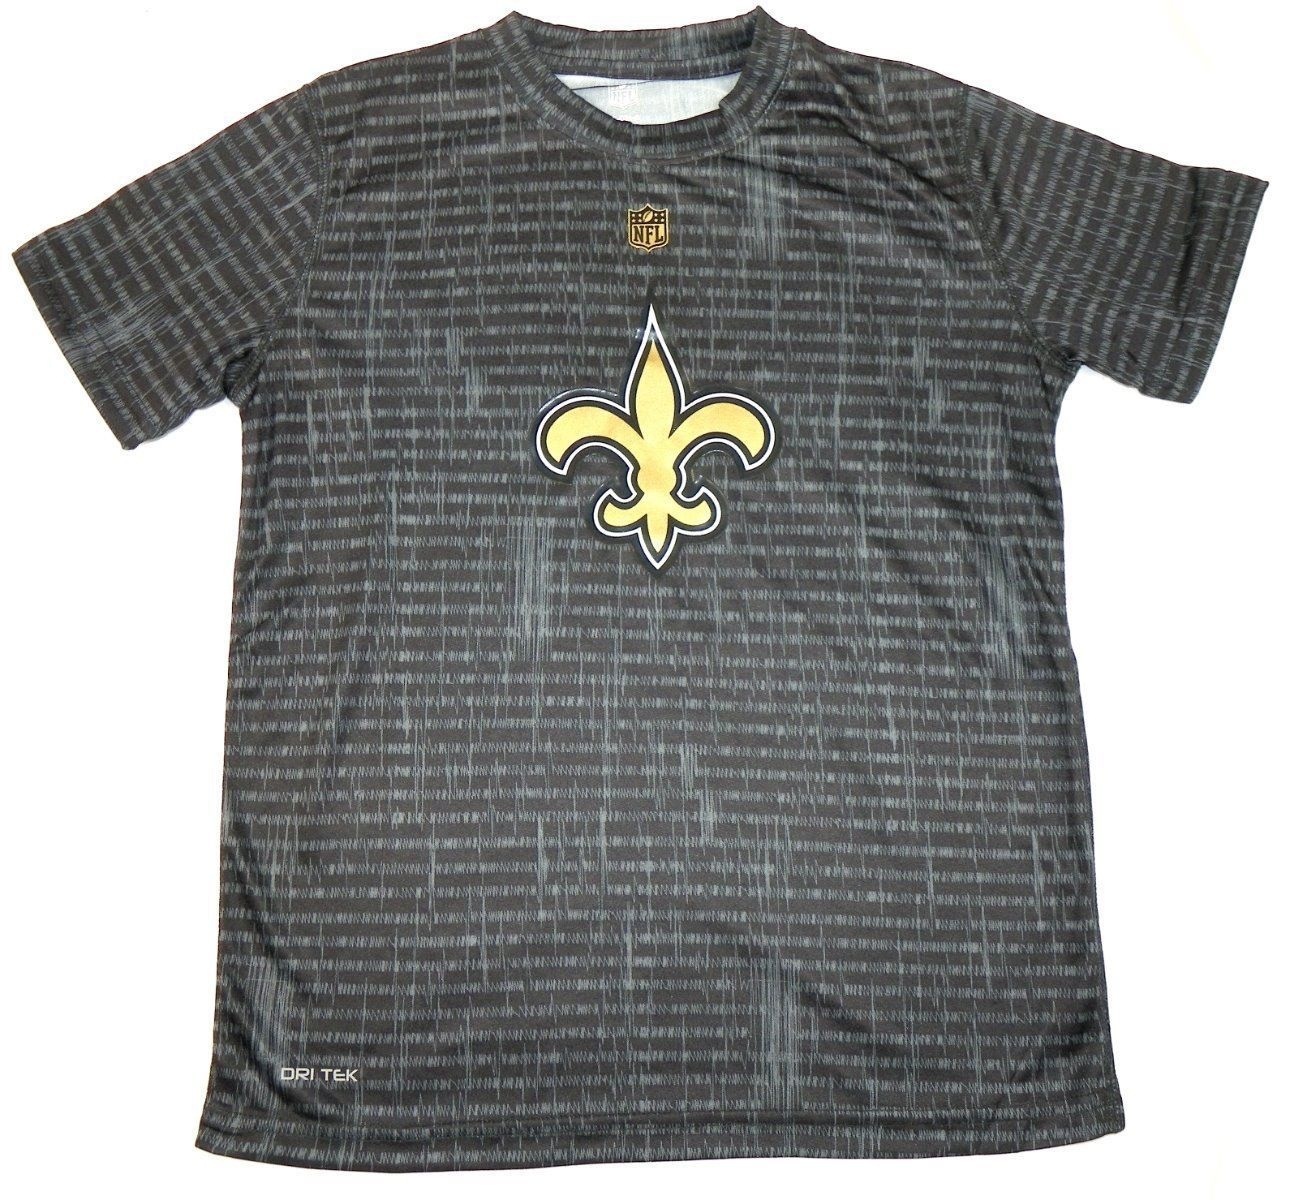 New Orleans Saints Boy's 8-18 Shirt NFL Resounding Short Sleeve Dri Tek Tee